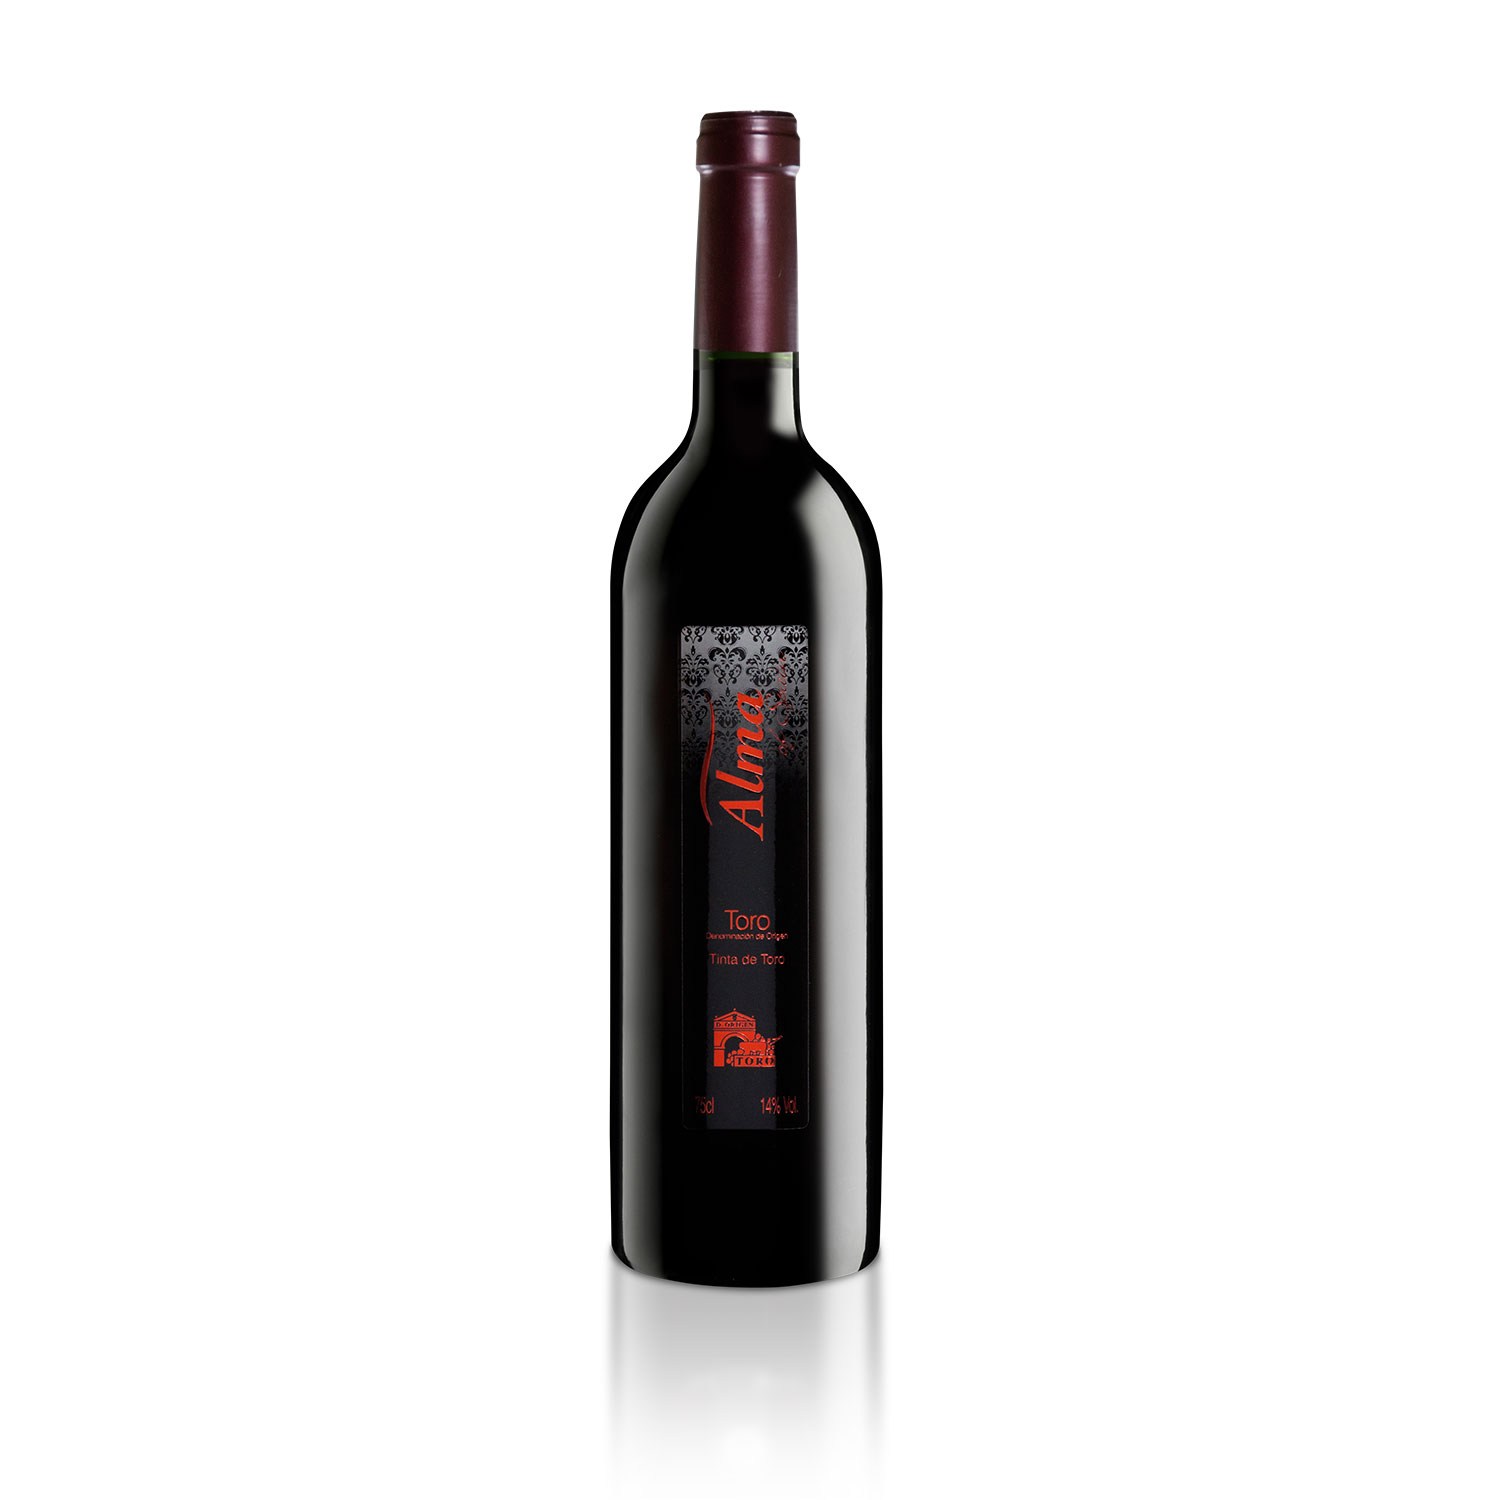 Vino Tinta de Toro 2013 de Alma of Spain